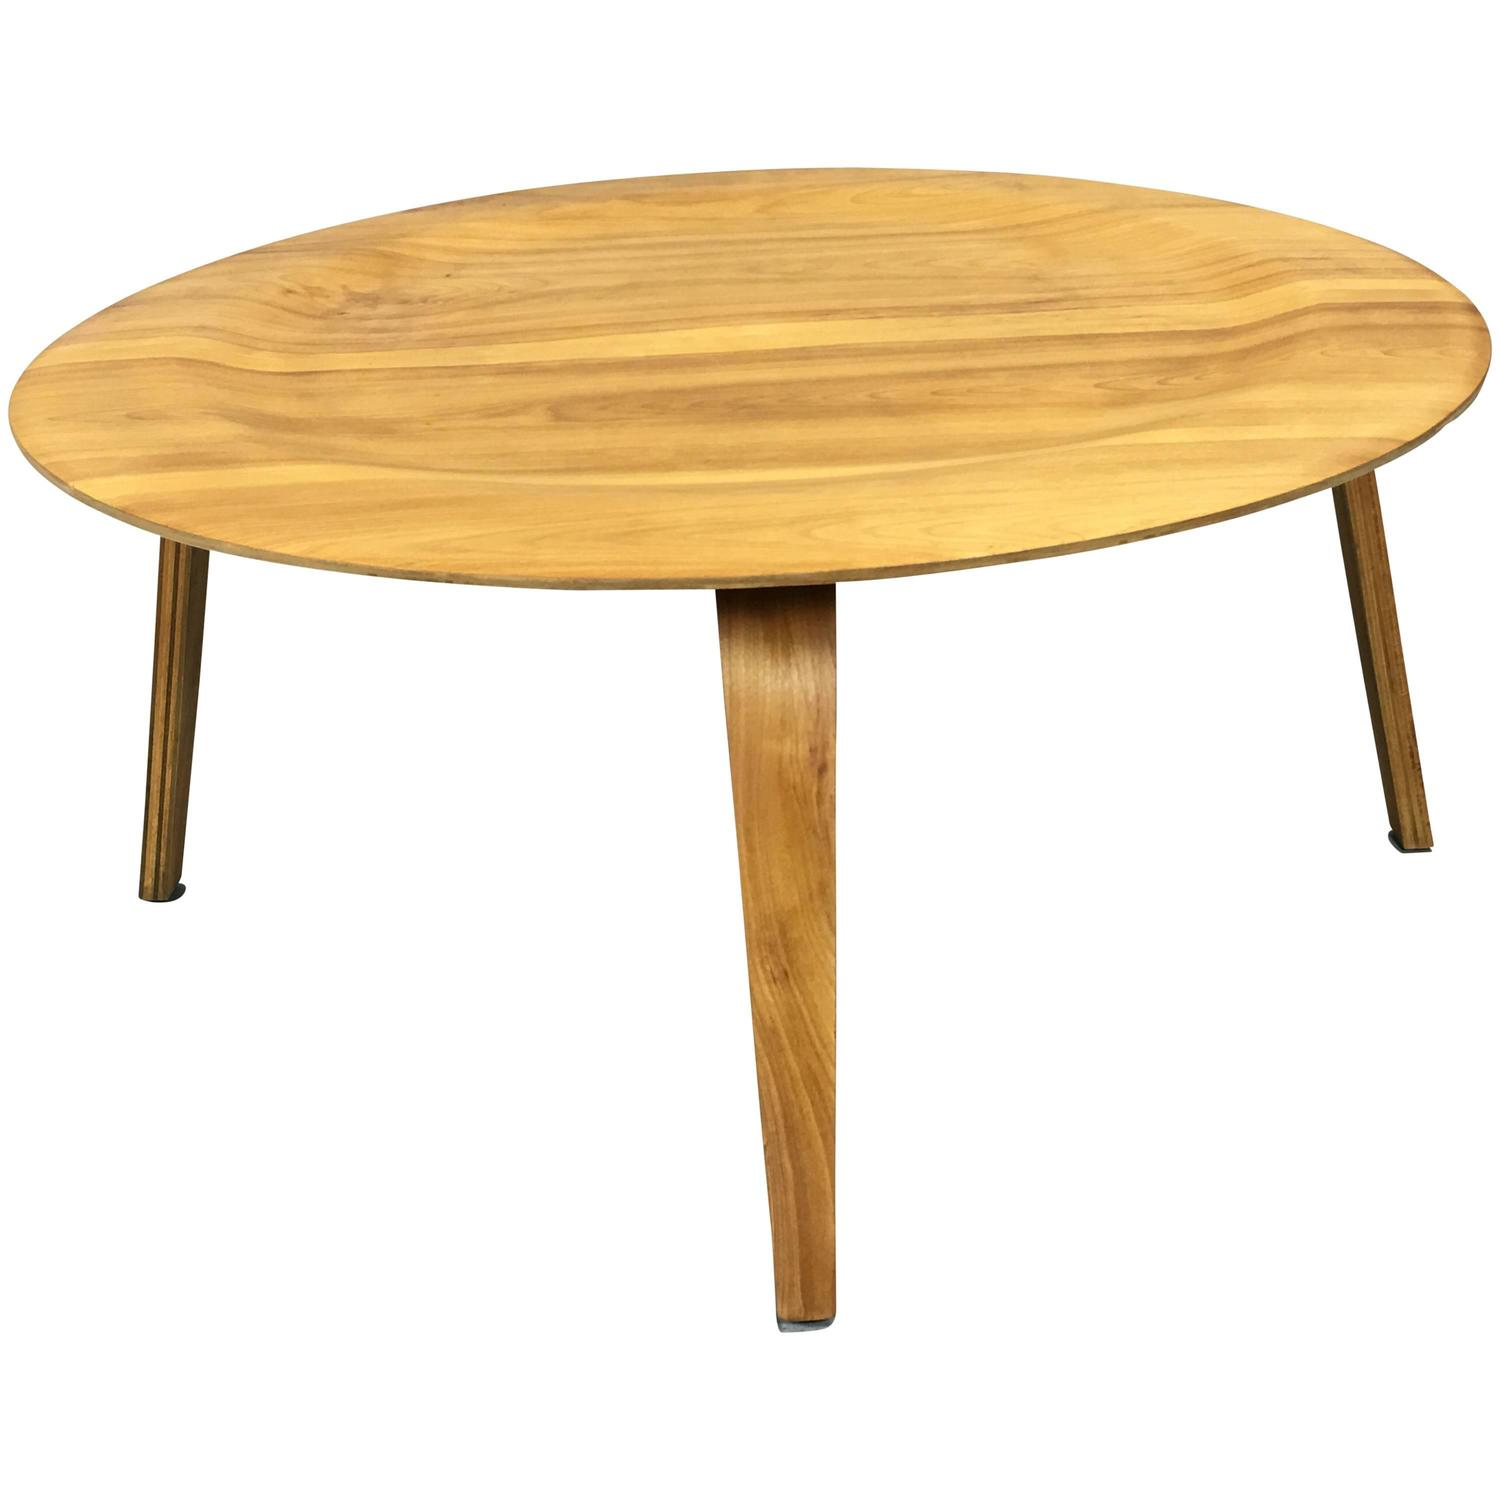 Evans Products Company Herman Miller Birch Coffee Table Circa 1946 For Sale At 1stdibs